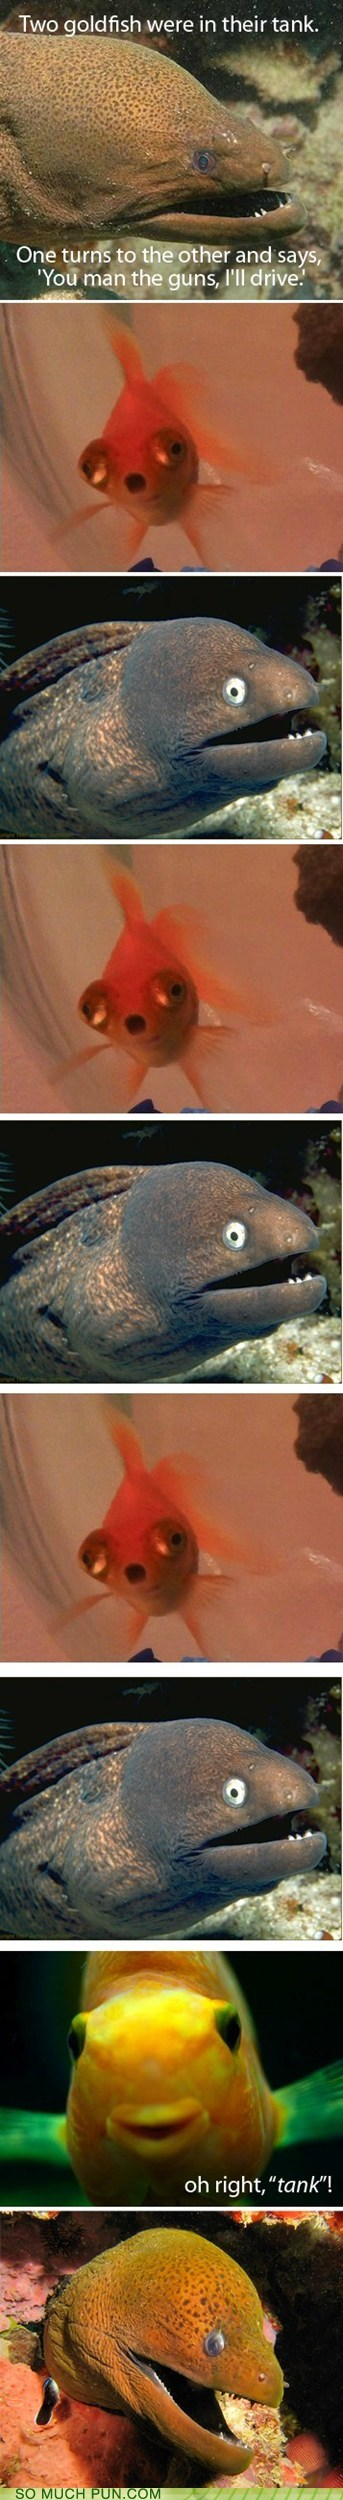 Bad Joke Eel cliché double meaning goldfish Hall of Fame ICWUDT meme reaction tank